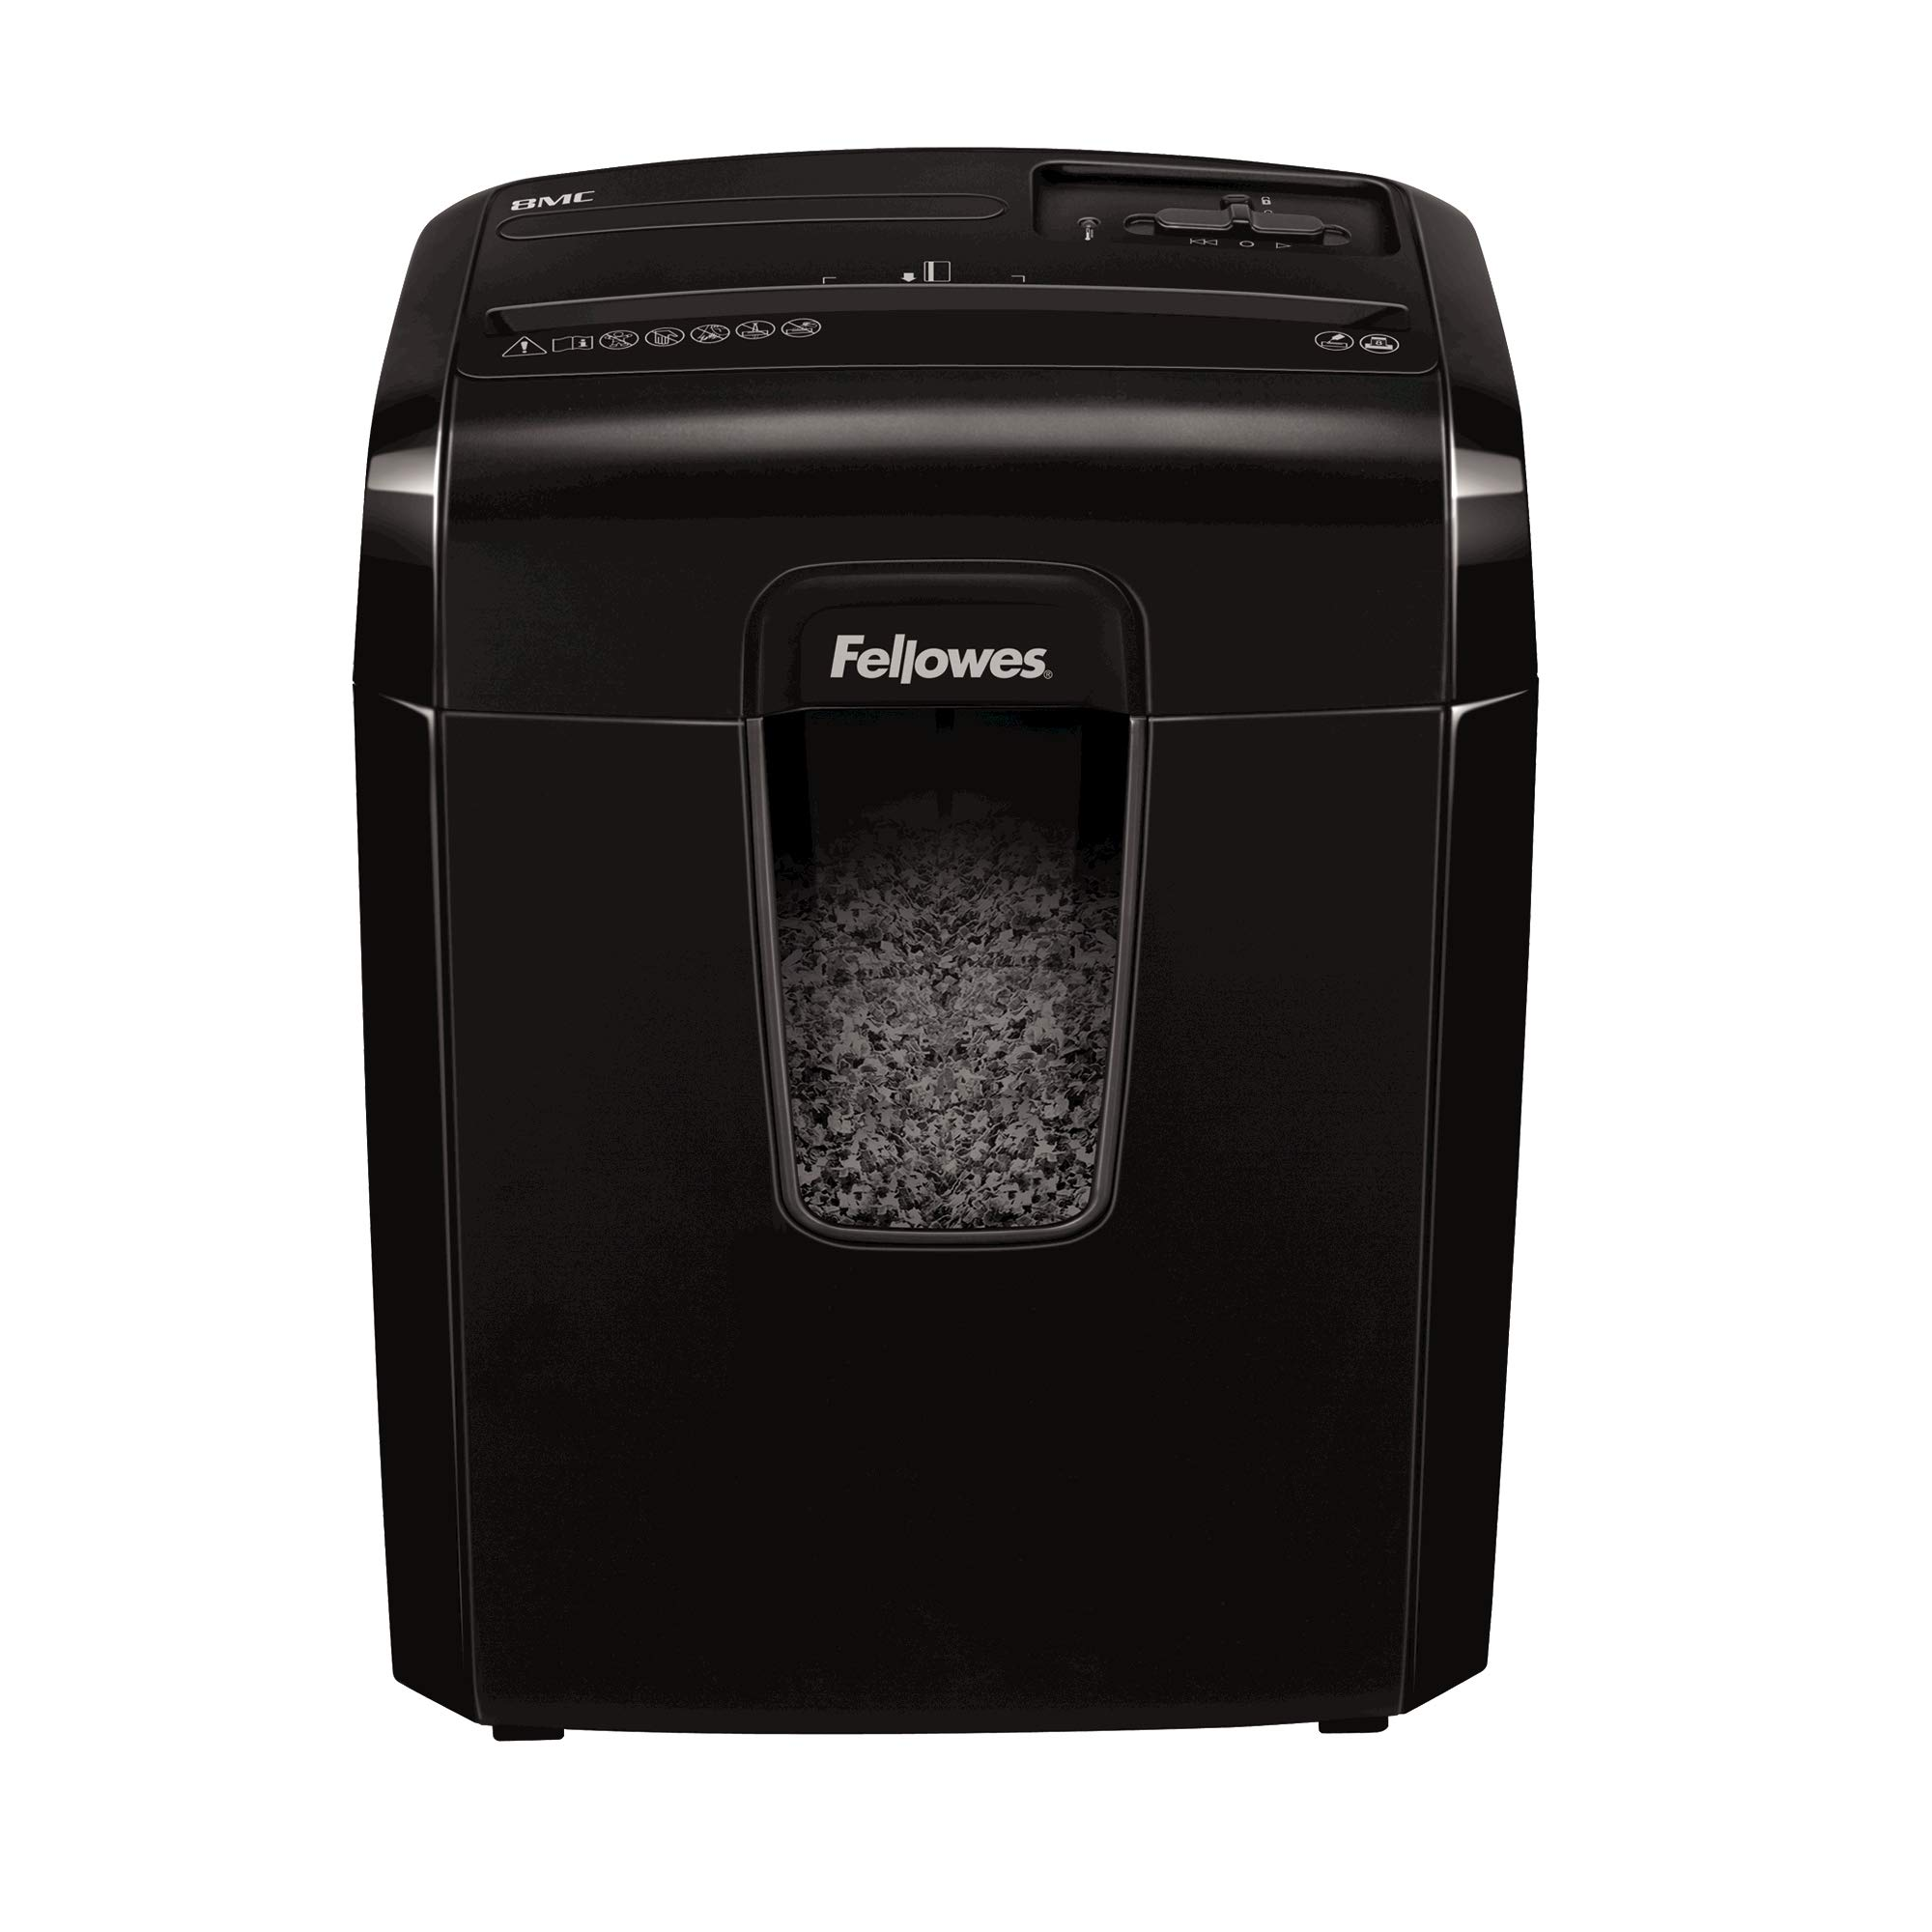 Fellowes Powershred 8Mc Destructeur de Documents 8 Feuilles Micro-particules – Technologie Safety Lock